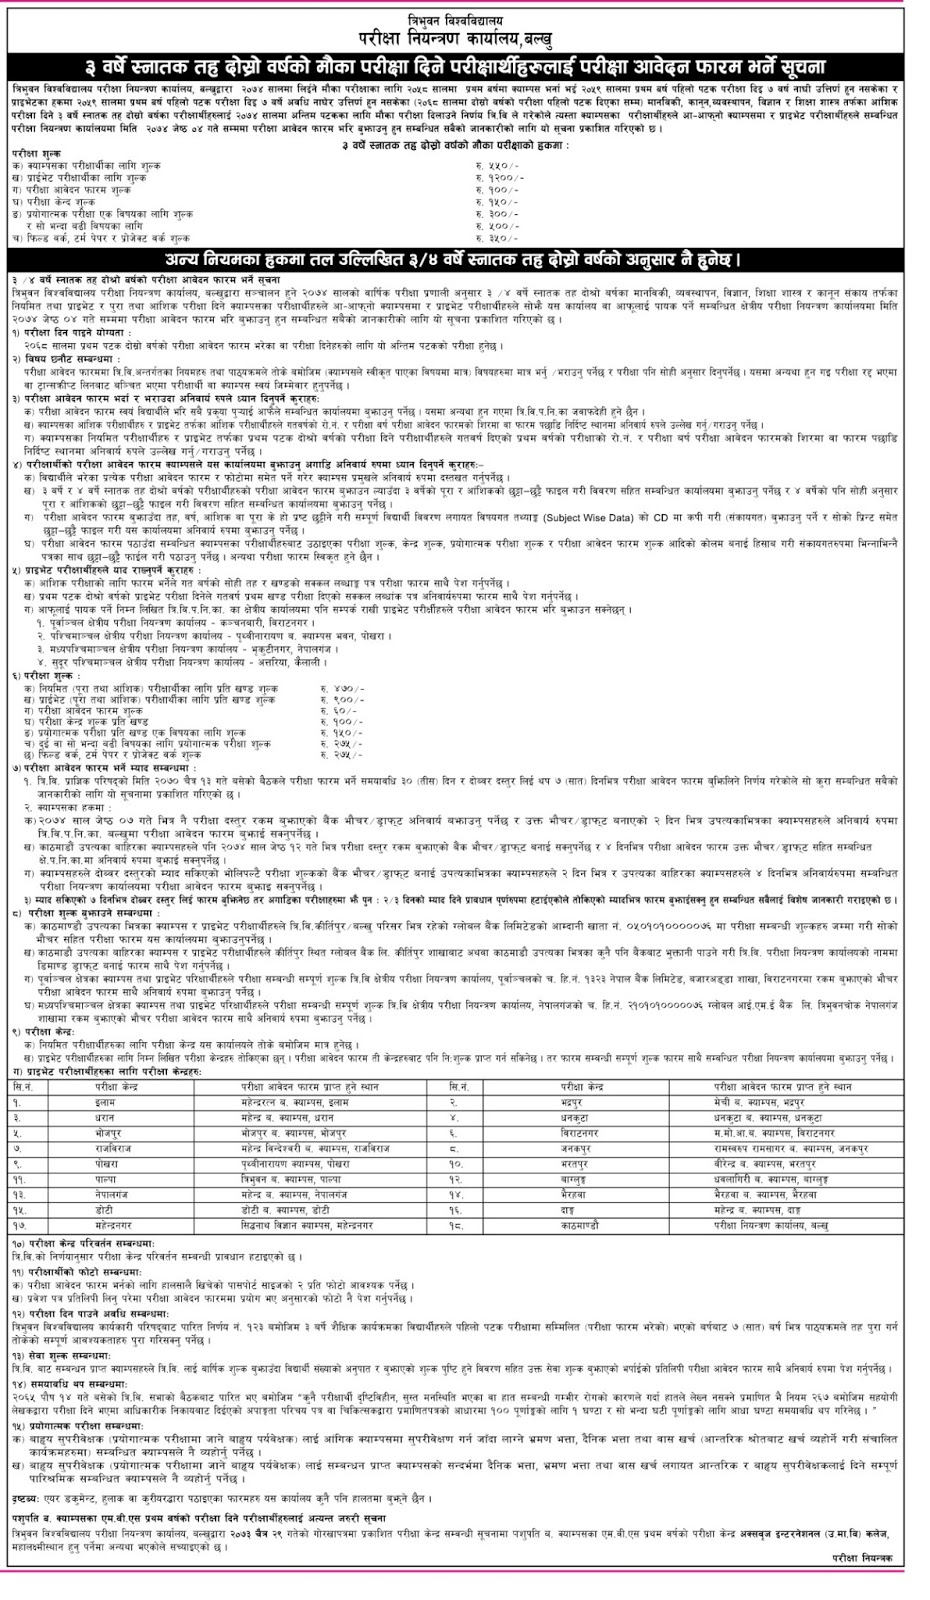 2nd year visa application form